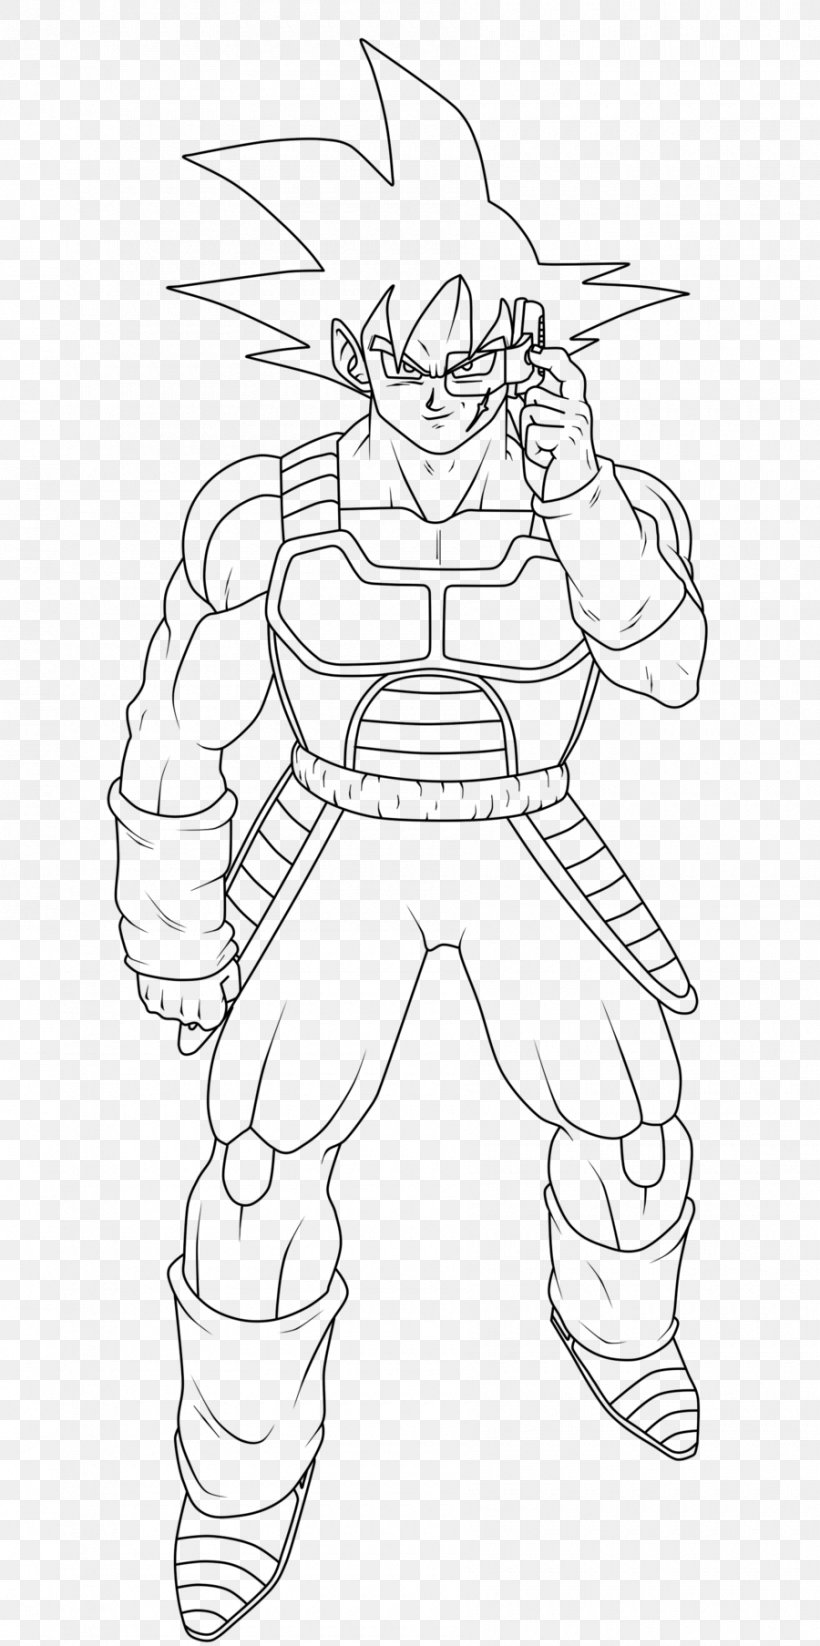 - Bardock Goku Coloring Book Drawing Dragon Ball, PNG, 900x1807px